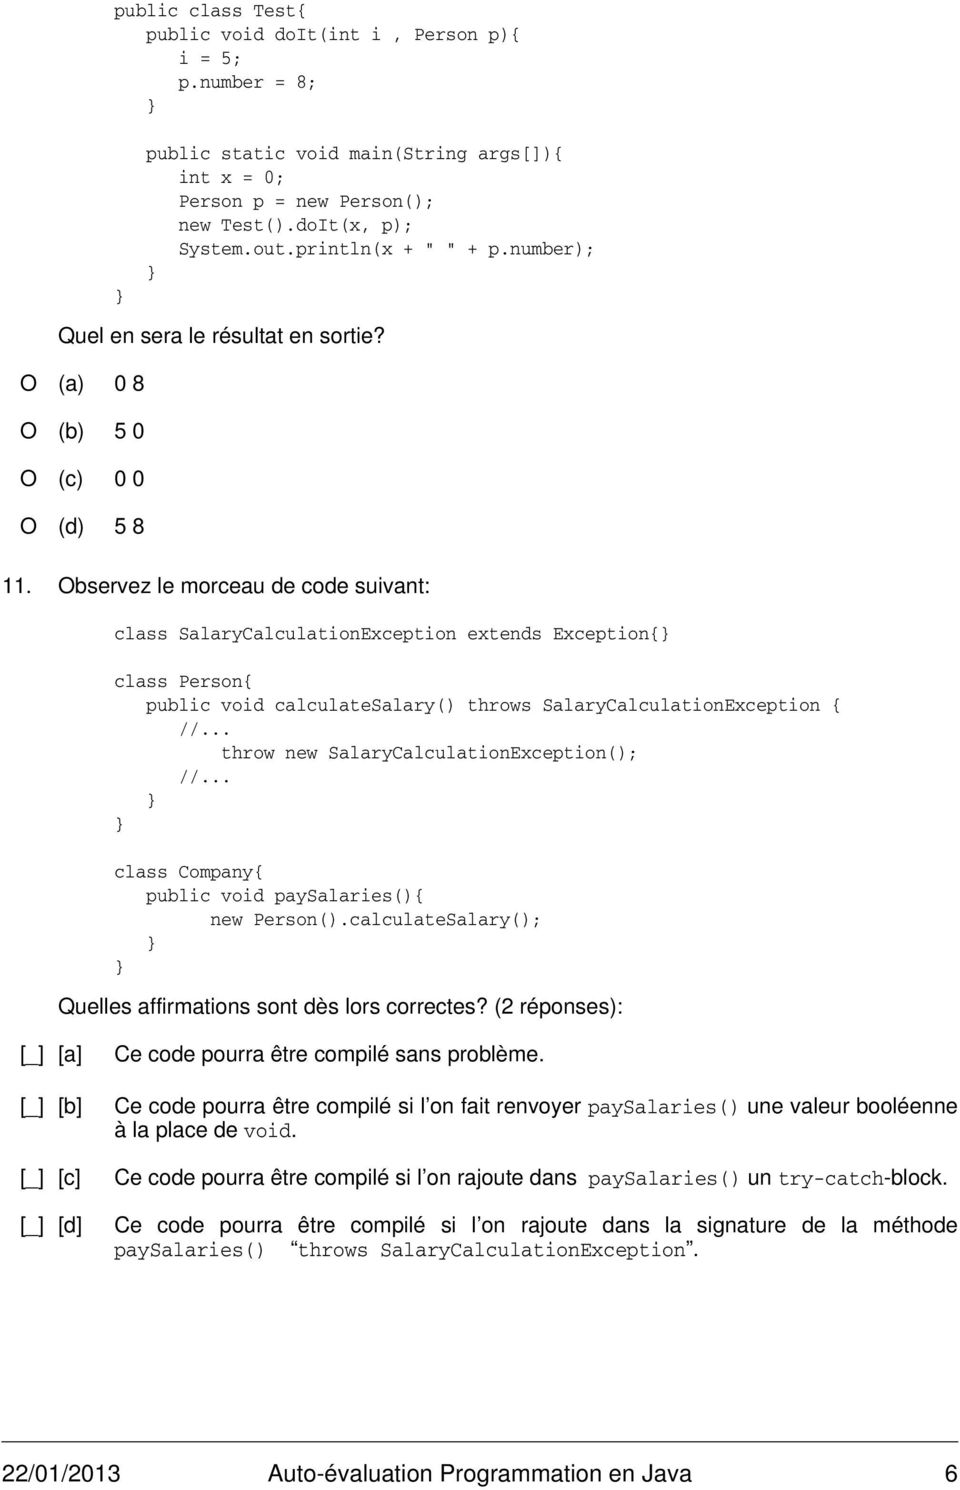 Observez le morceau de code suivant: class SalaryCalculationException extends Exception{ class Person{ public void calculatesalary() throws SalaryCalculationException { //.